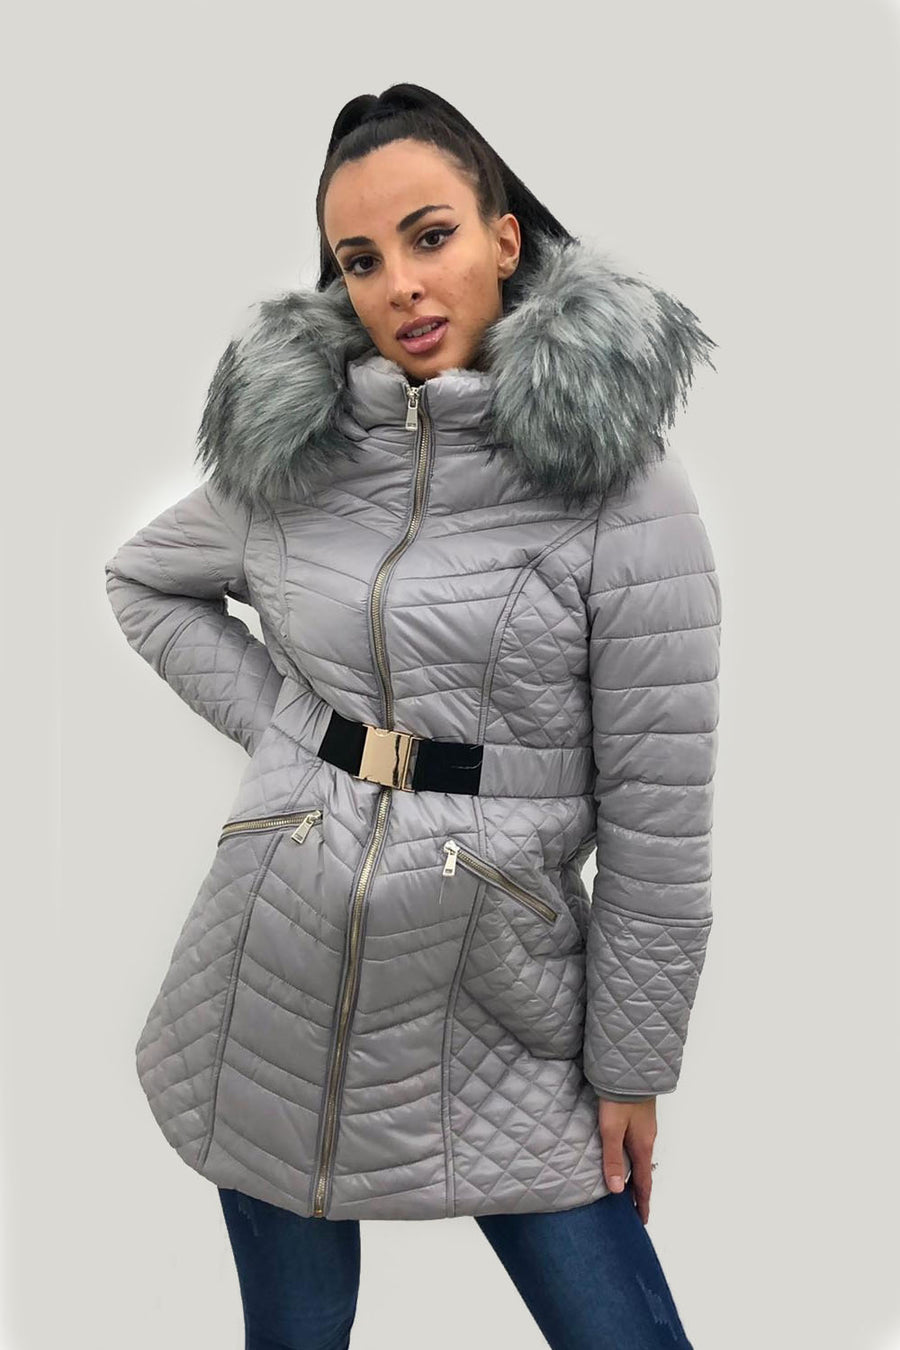 Grey Shiny Faux Fur Hooded Long Puffer Jacket - Annalise